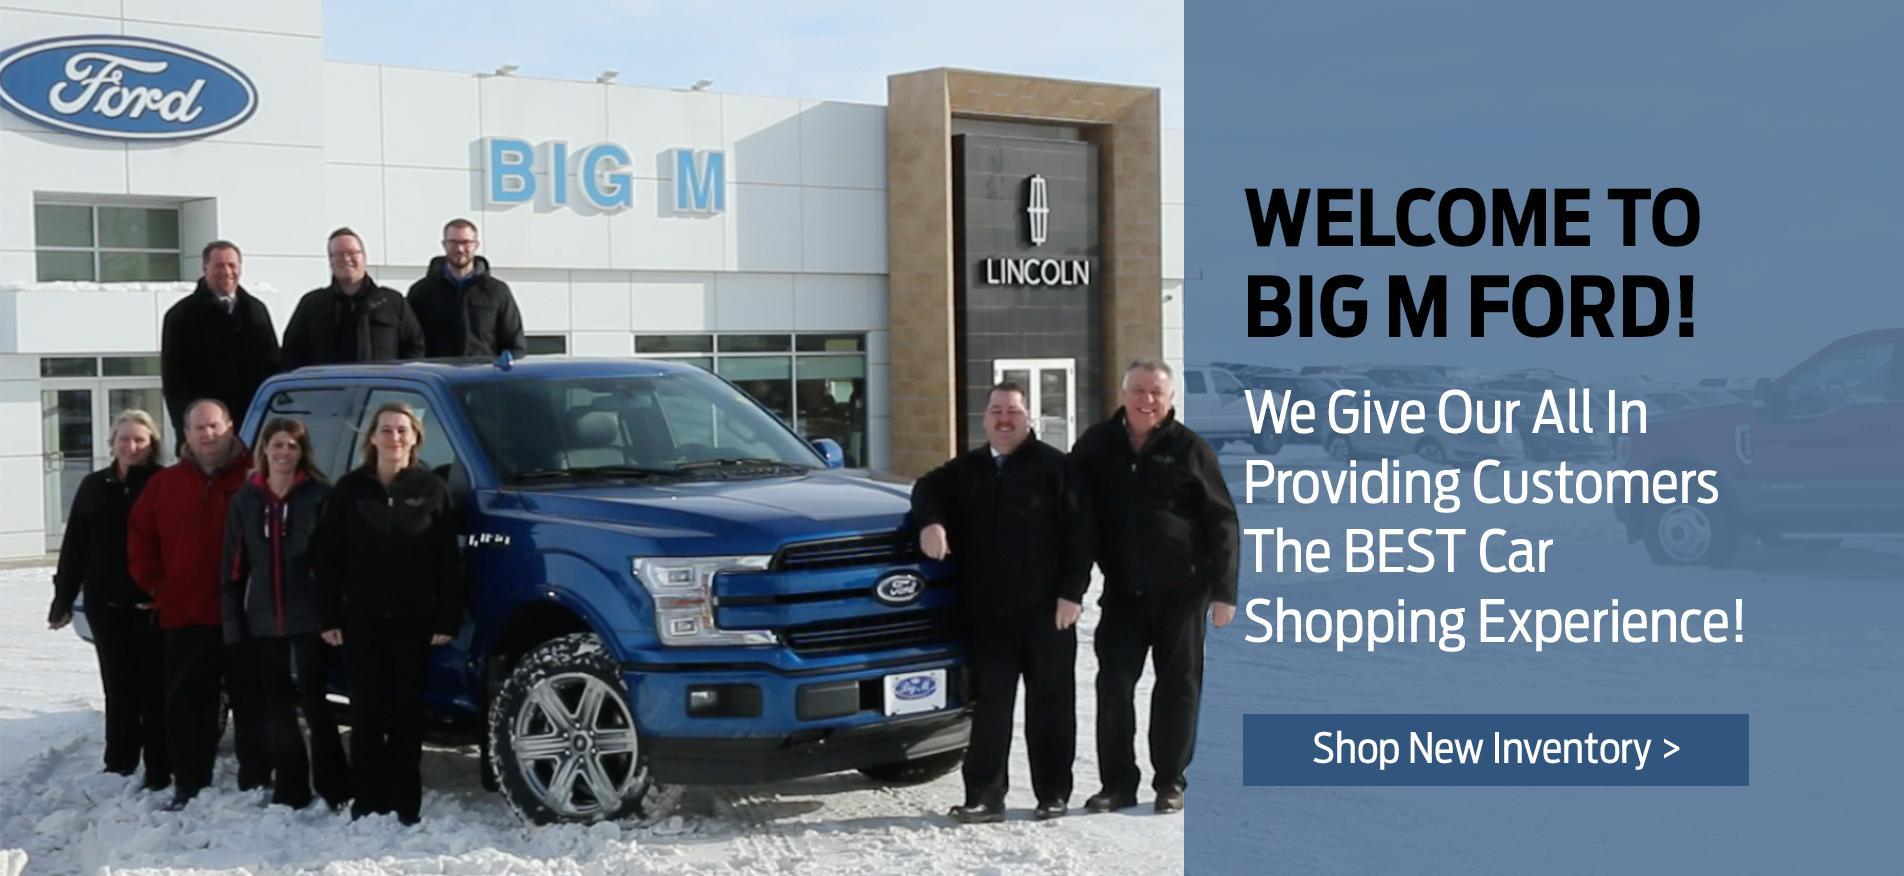 Welcome to Big M Ford